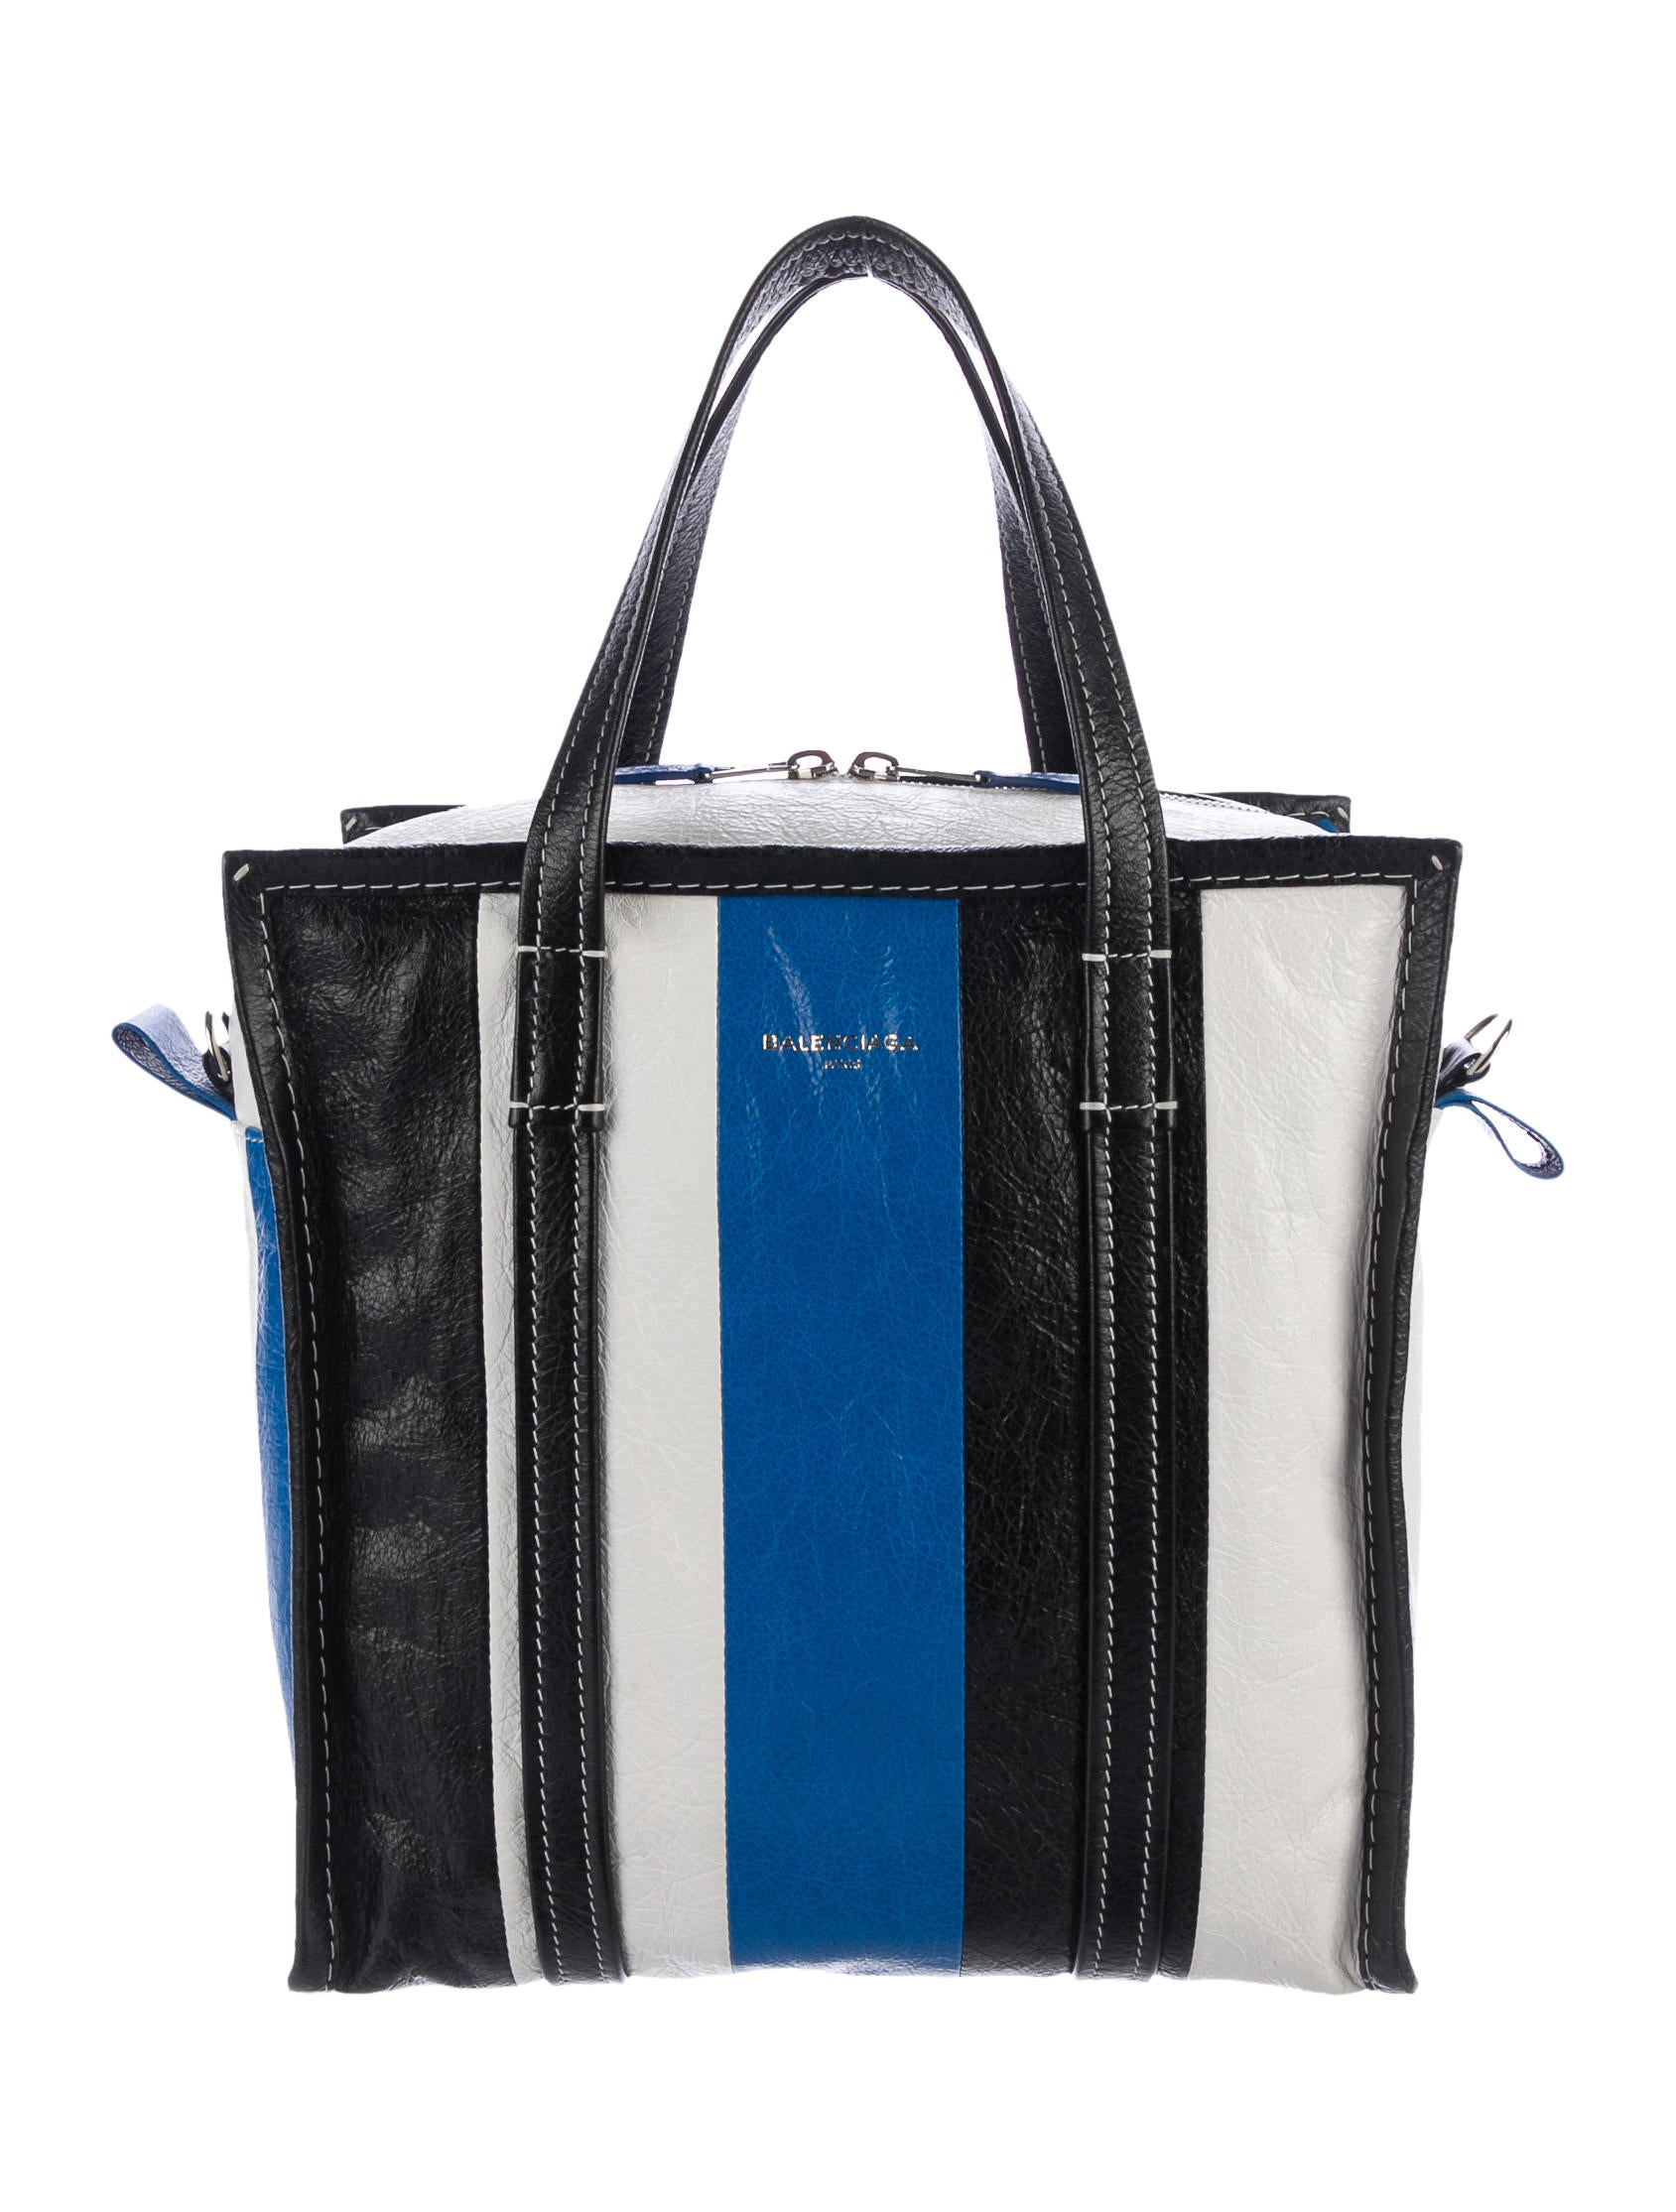 745cab6d855d Balenciaga 2016 Small Bazar Shopper Tote - Handbags .